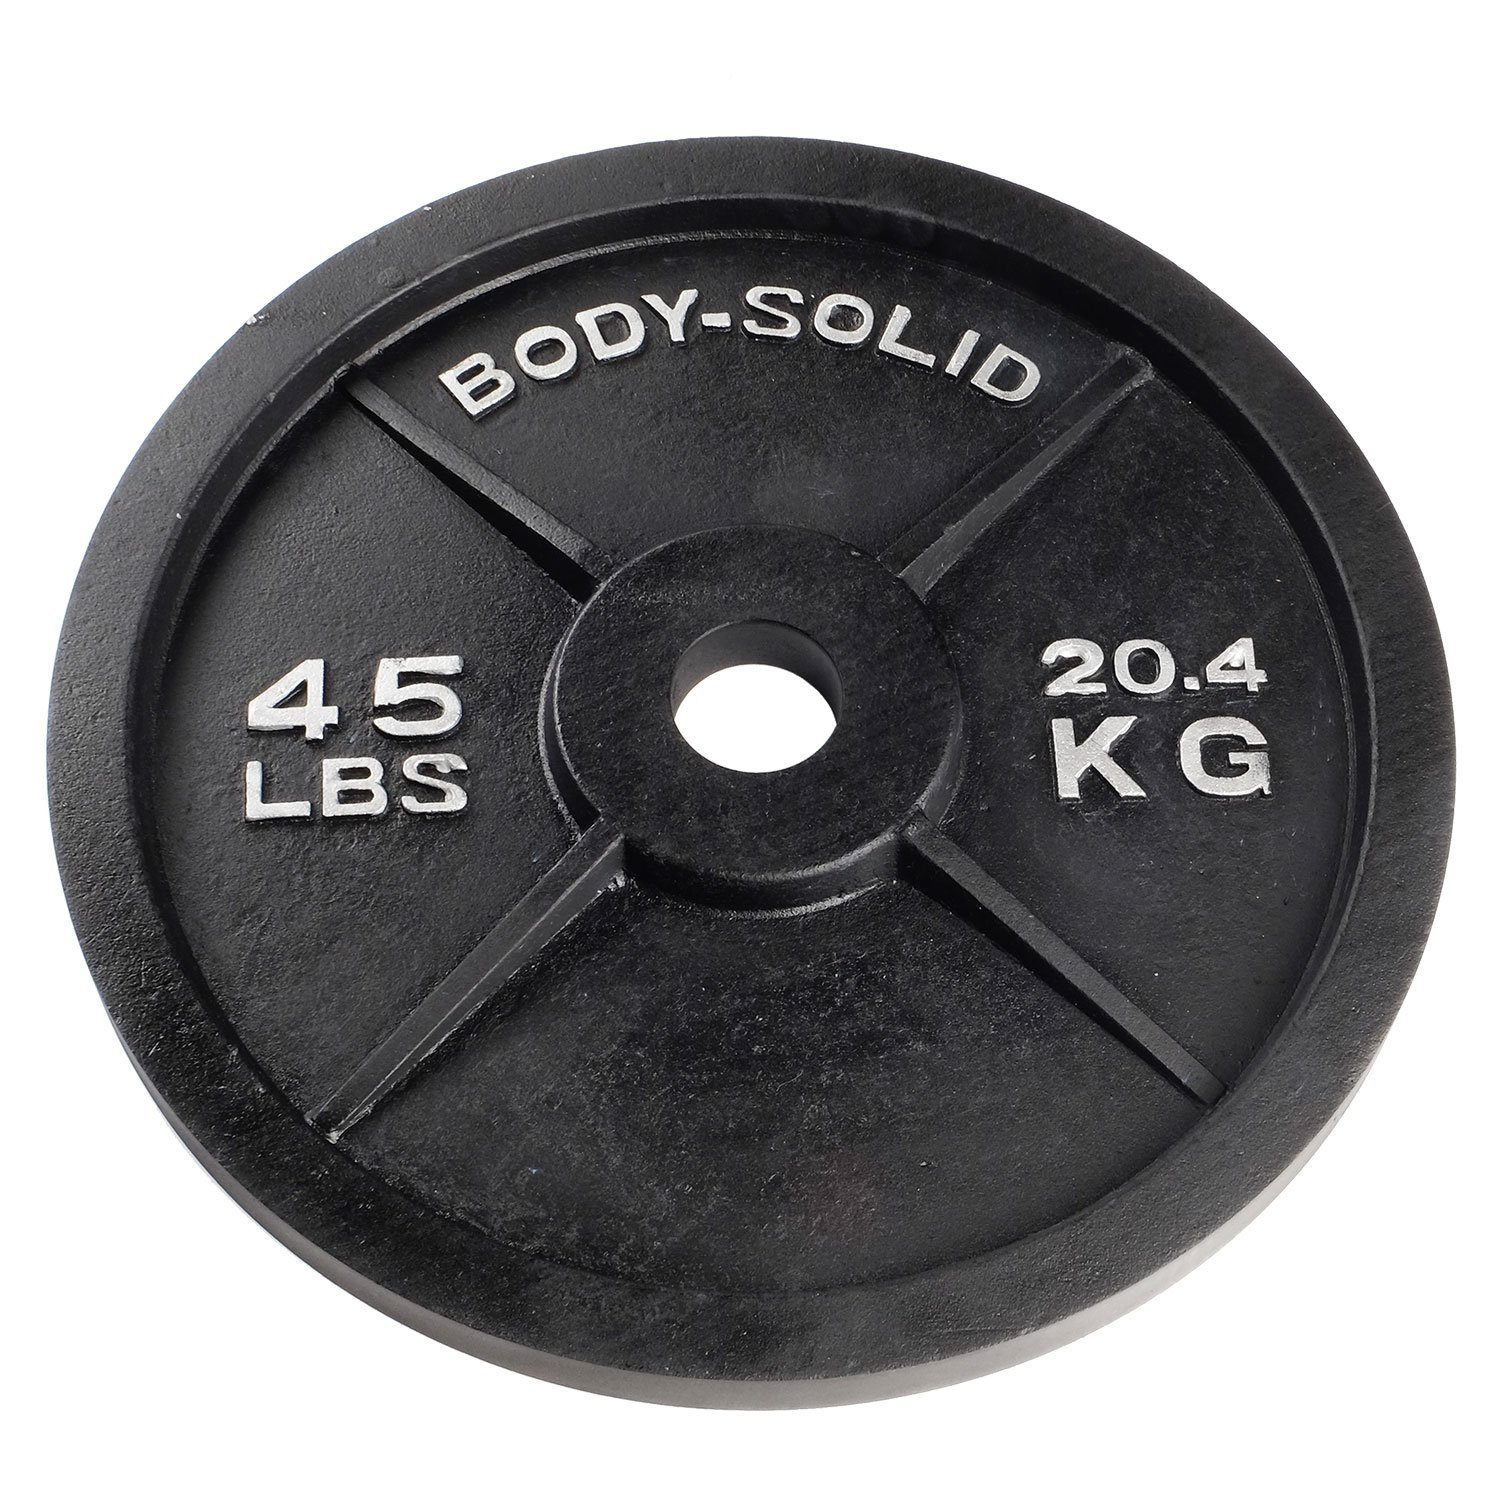 Body-Solid 45 lb. Olympic Plate